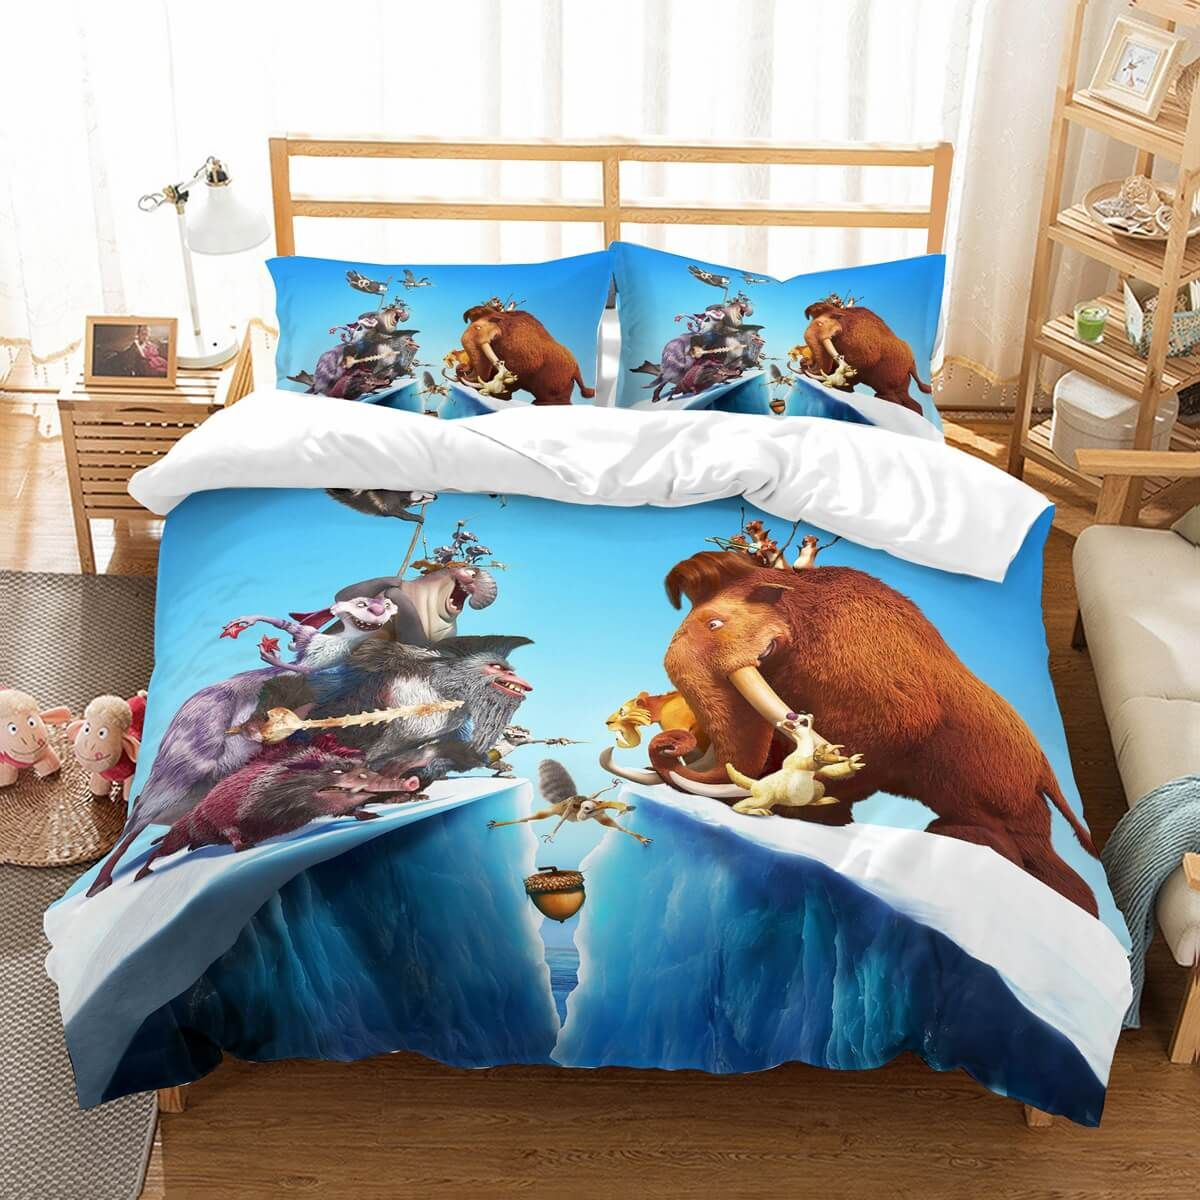 Customize Ice Age Bedding Set Duvet Cover Bedroom Bedlinen Custom Linen